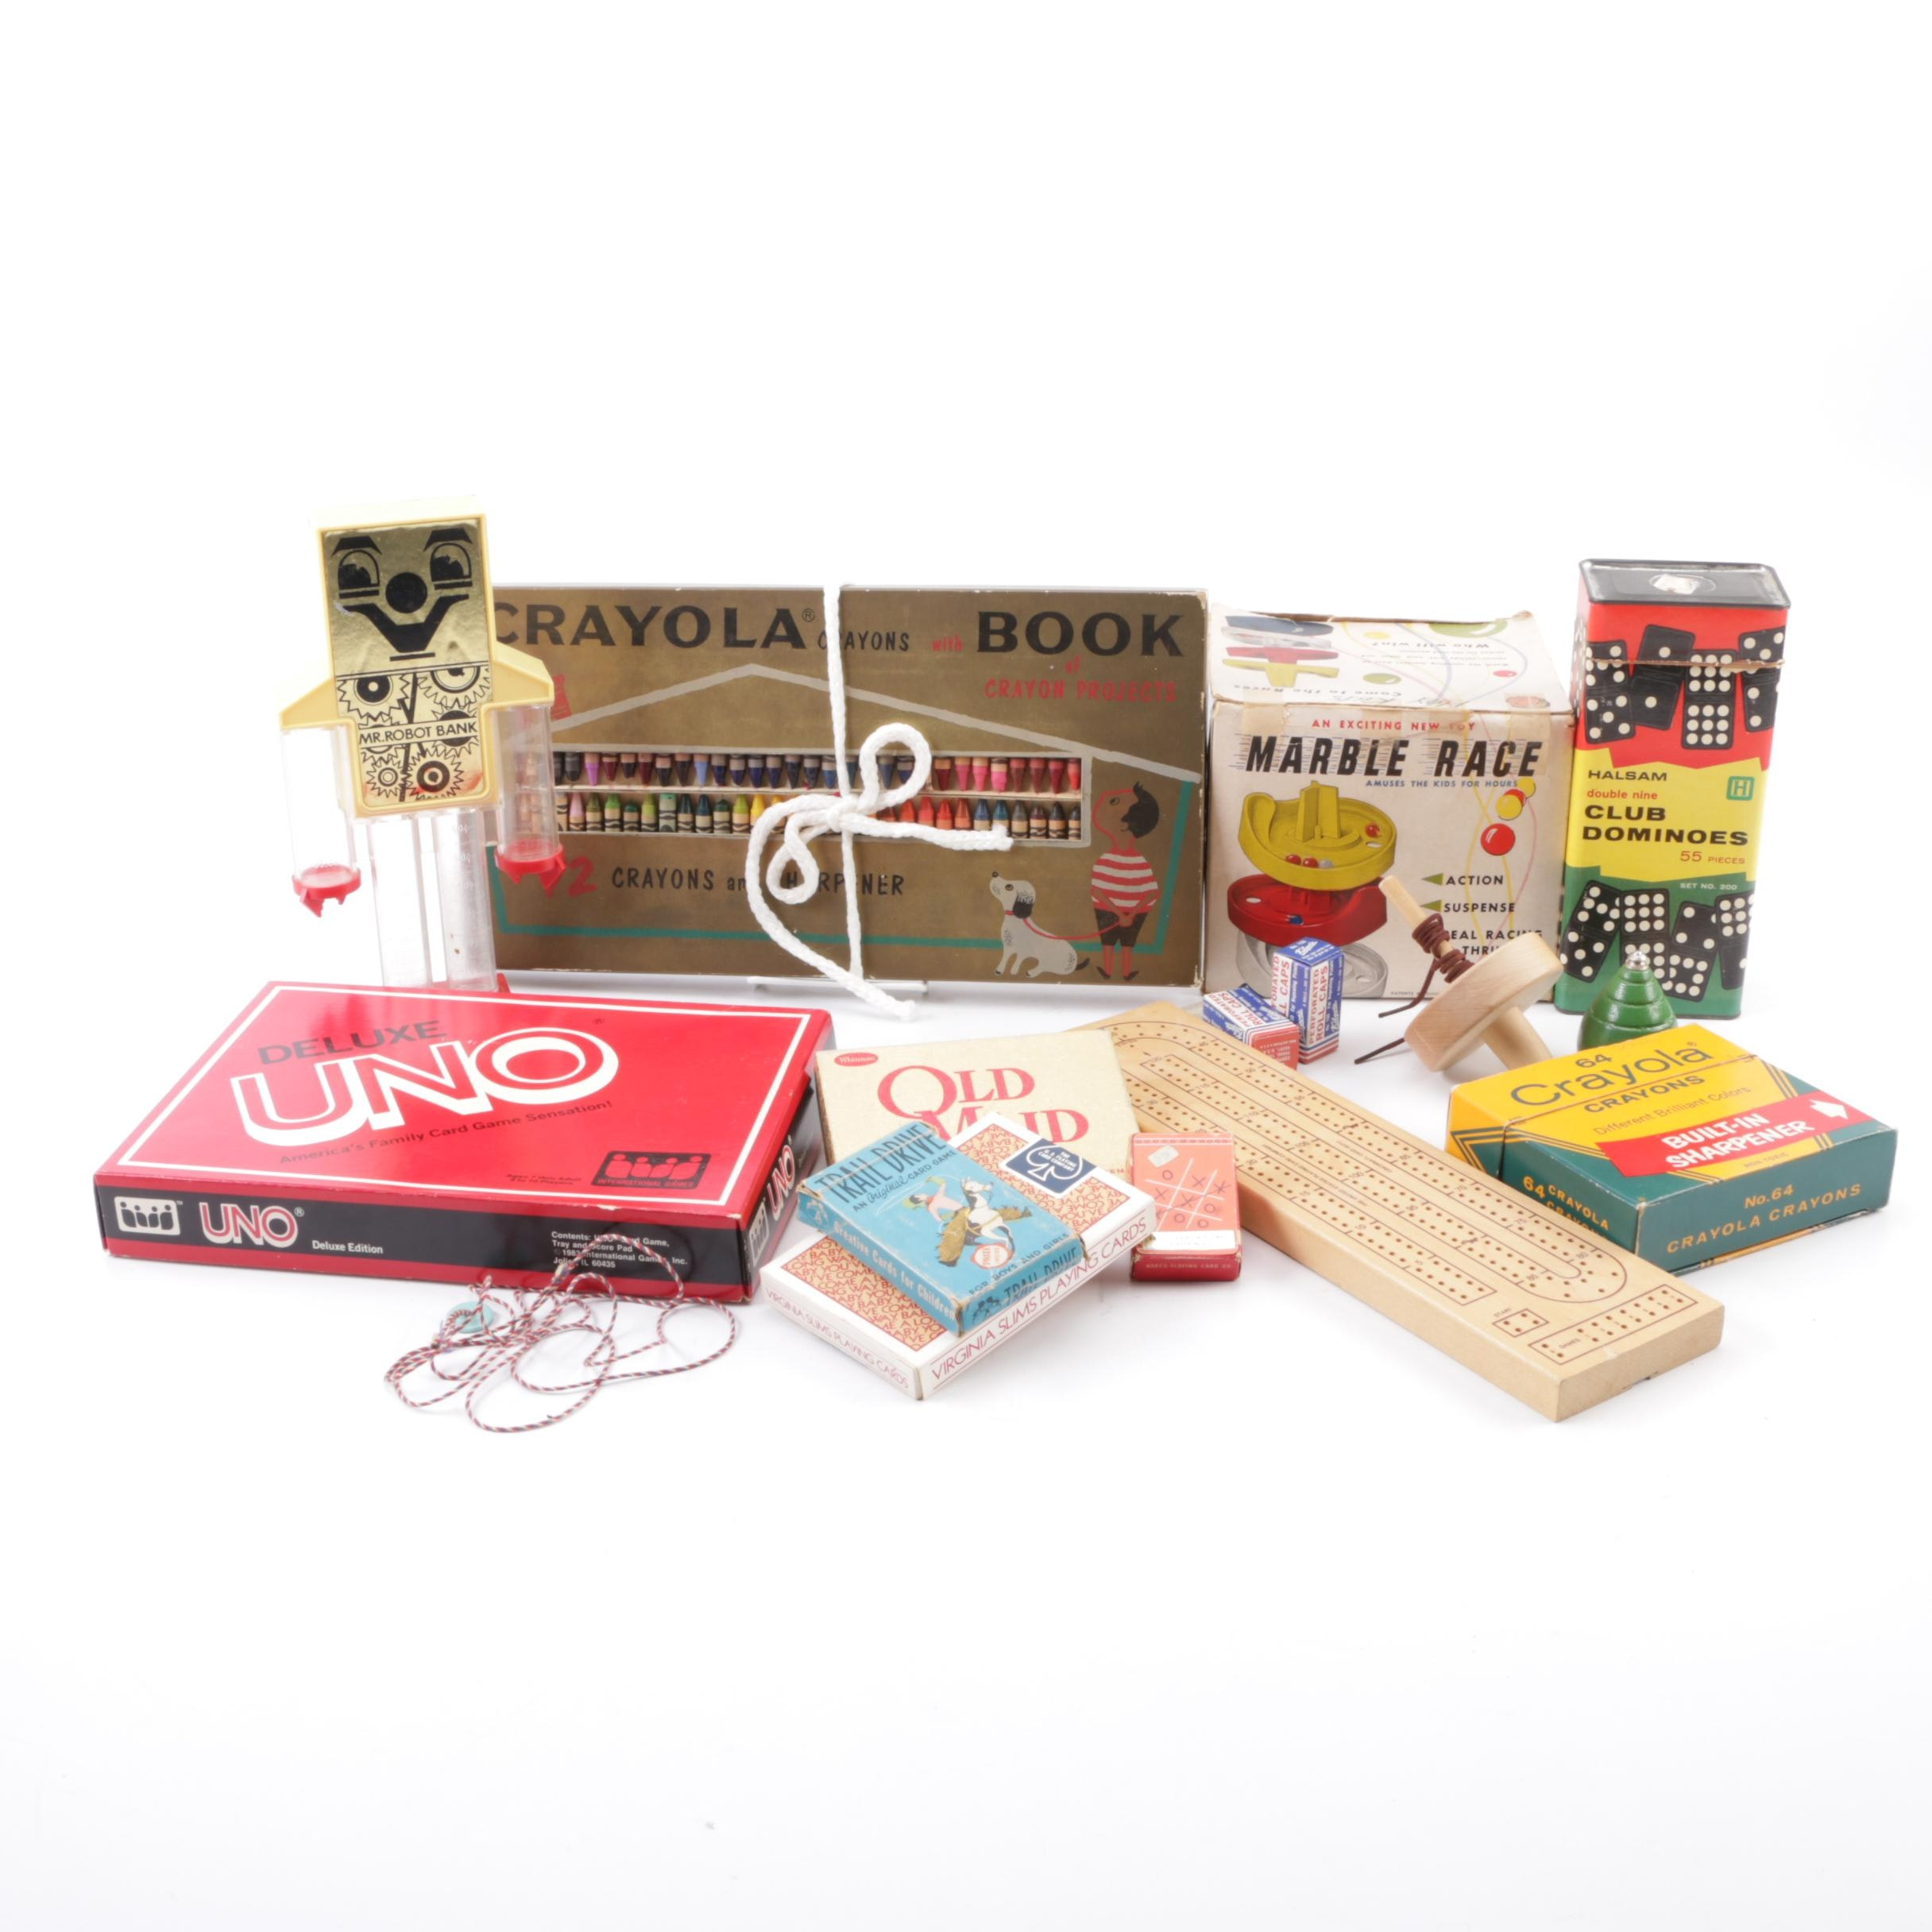 Vintage Toys and Games Including 1960s–70s Crayola Crayons